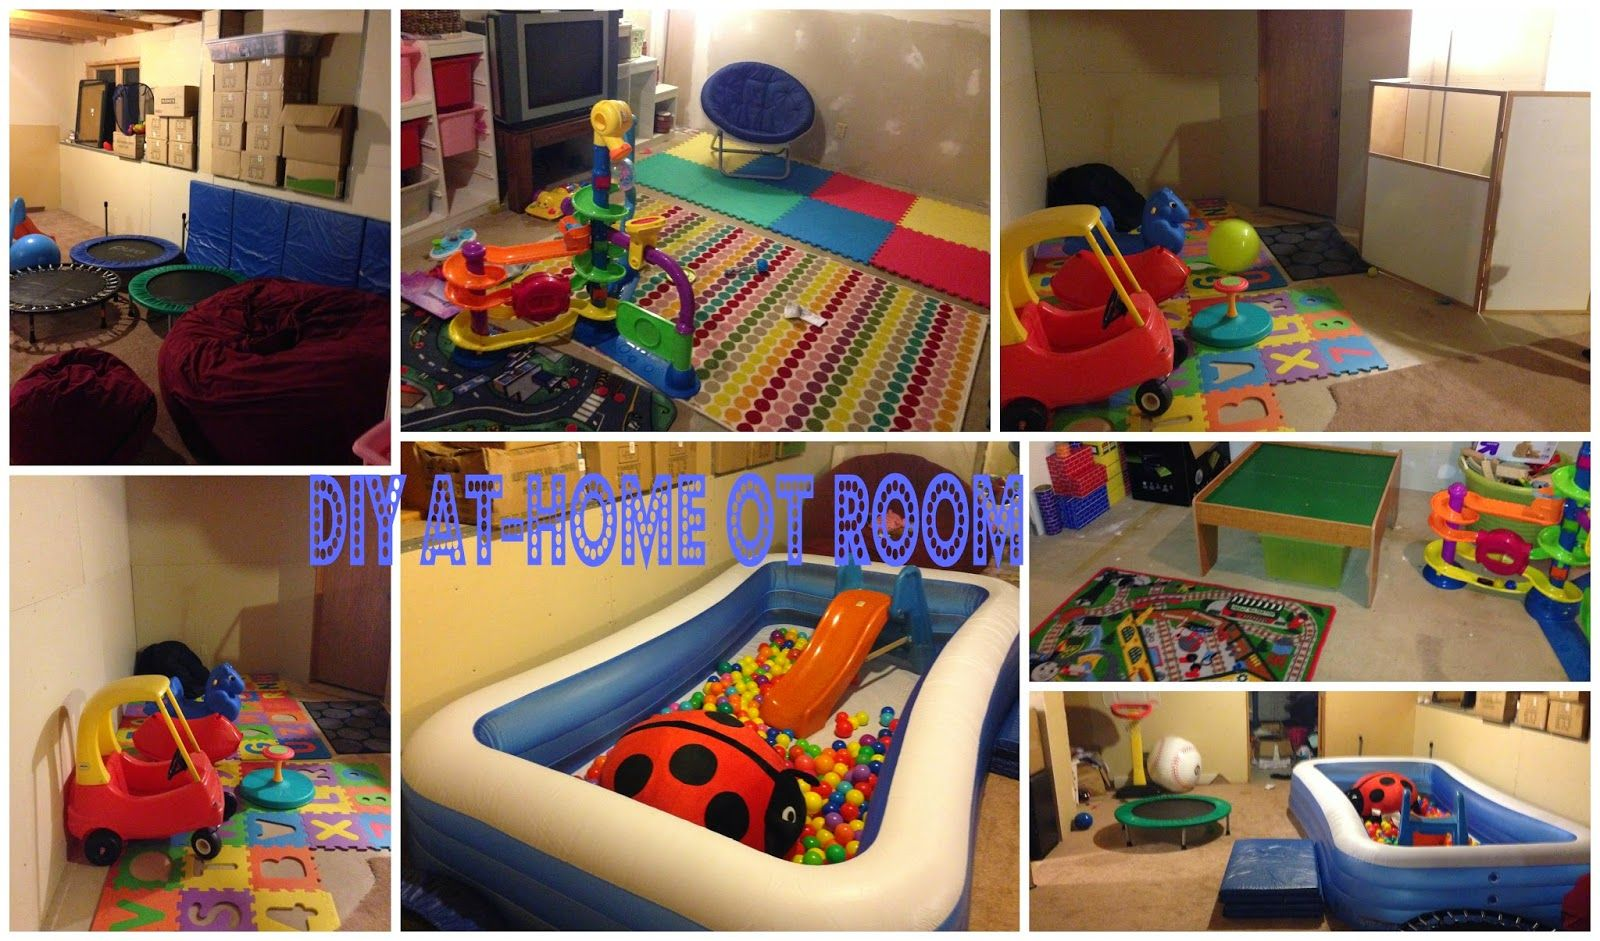 Simply Blessed Journey Of Life DIY Occupational Therapy Play Room In Unfinished Basement